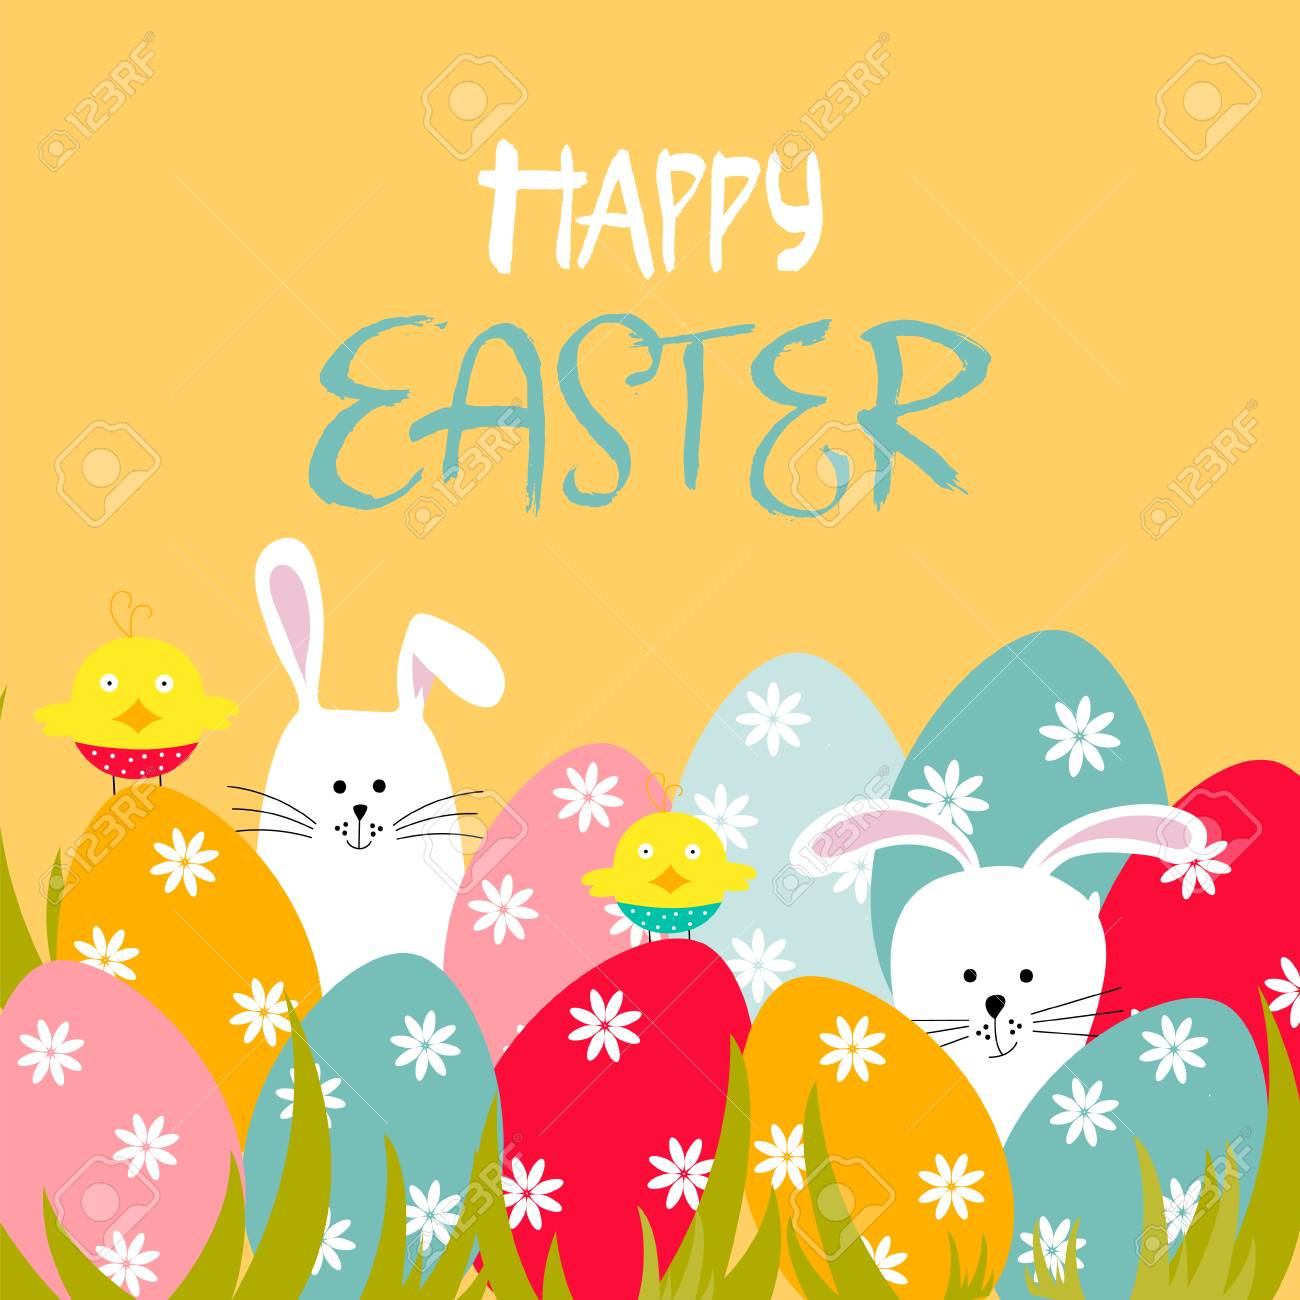 Easter Greeting Card With Eggs Chickens Bunnies And Lettering